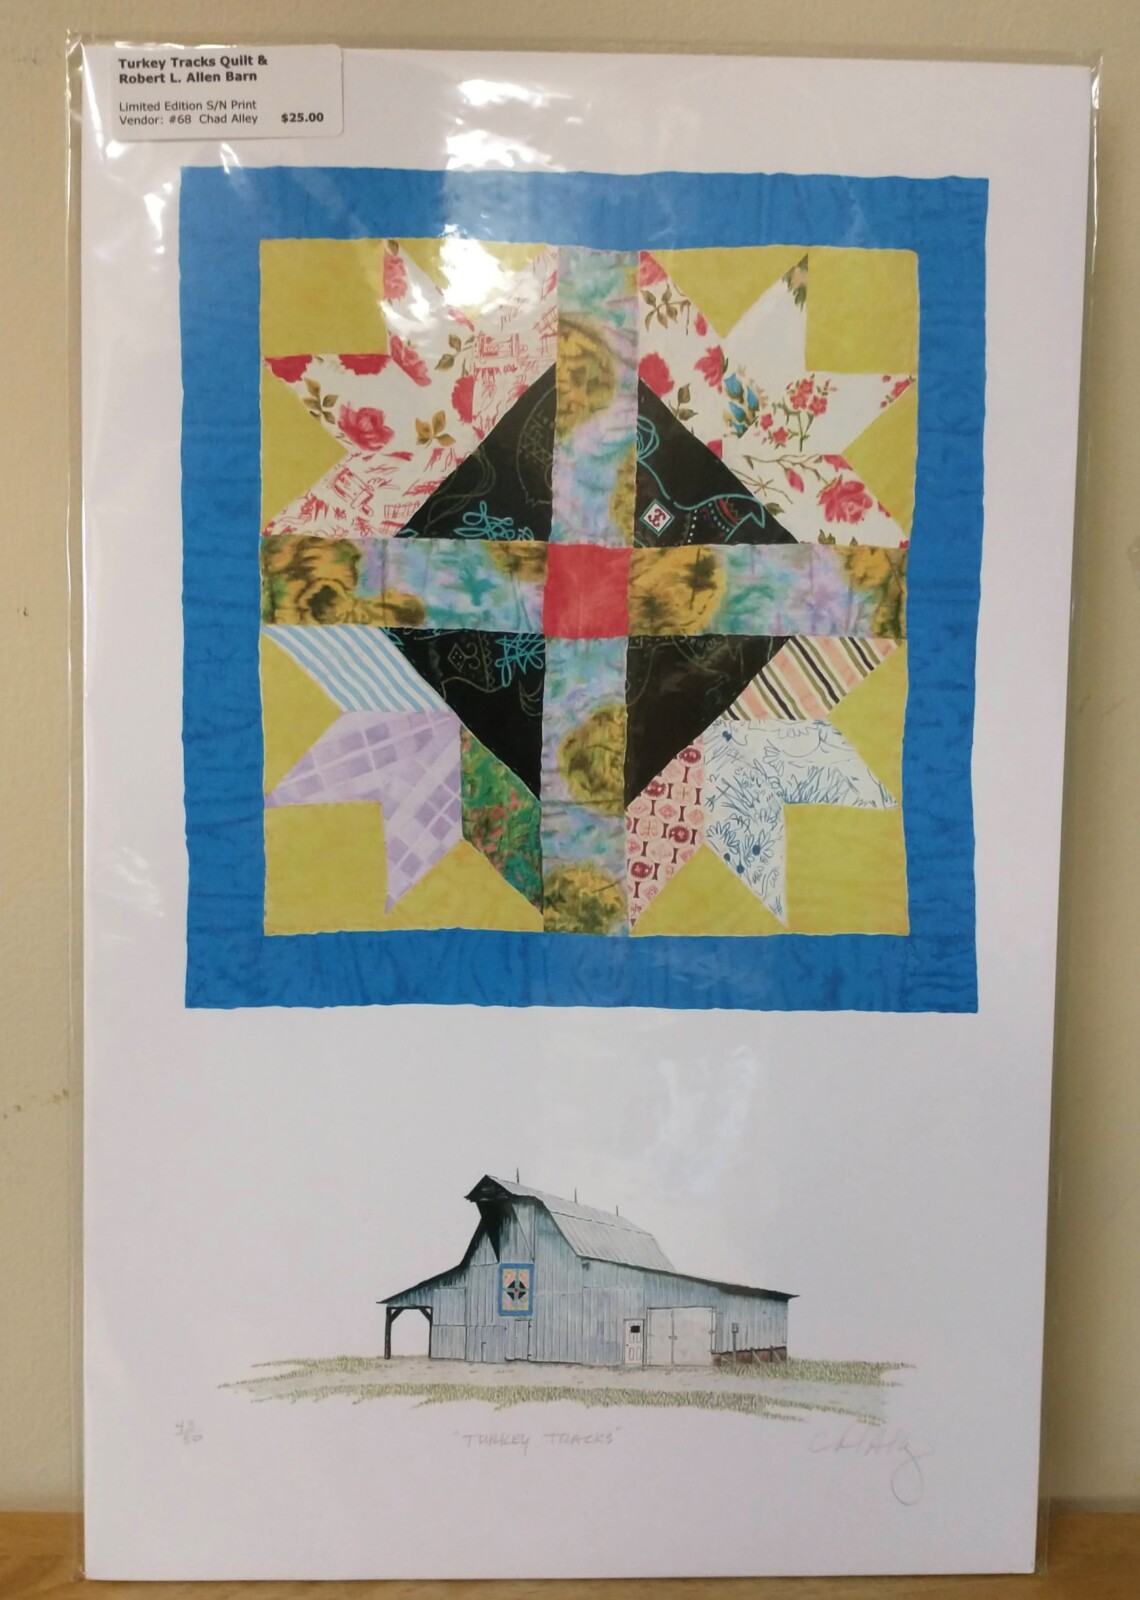 Turkey Tracks Quilt & Robert L. Allen Barn Print